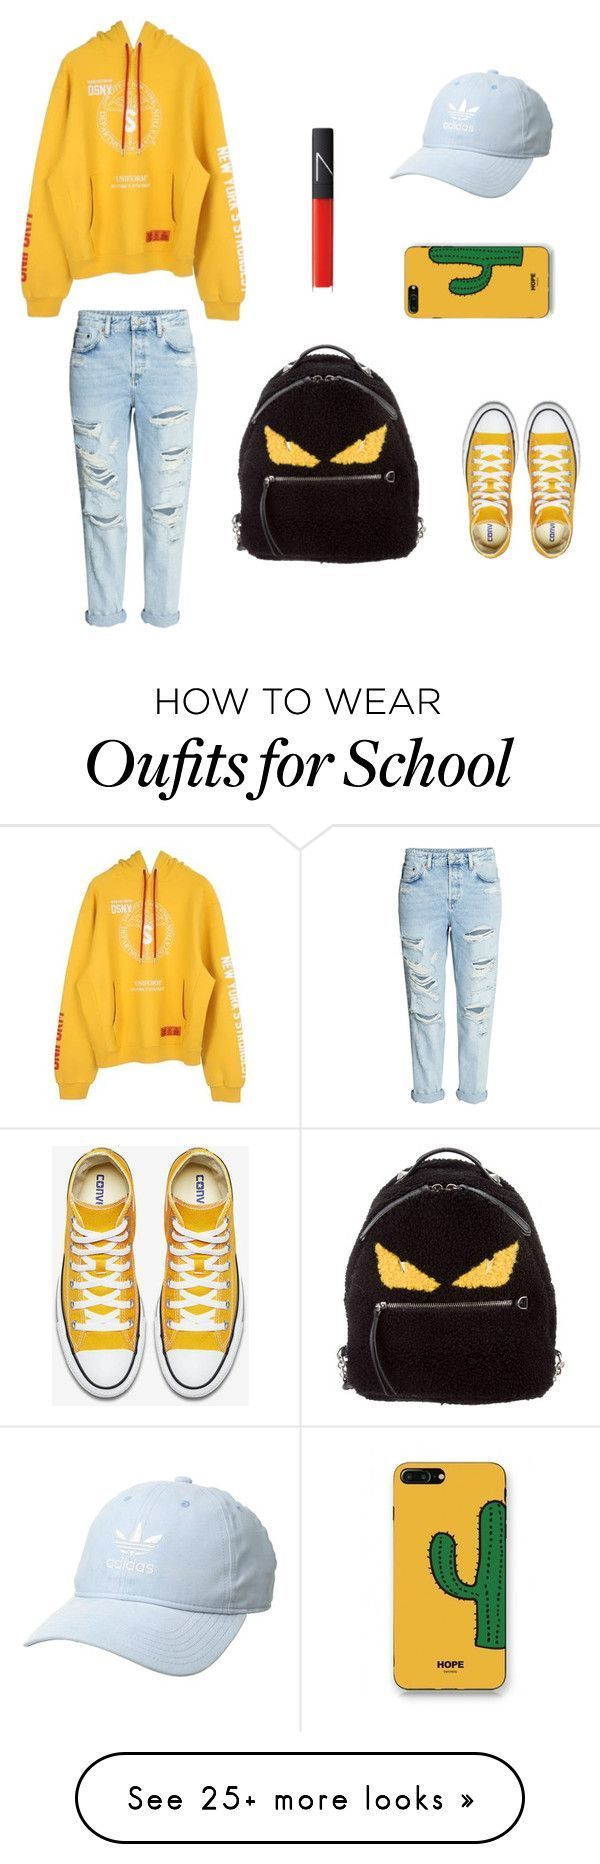 """Back to school "" by lisaachan on Polyvore featuring Heron Preston, Fendi, WithChic, adidas Originals, NARS Cosmetics, outfit, ootd and fashionable #schooloutfits #rippedjeanswomenclothing"